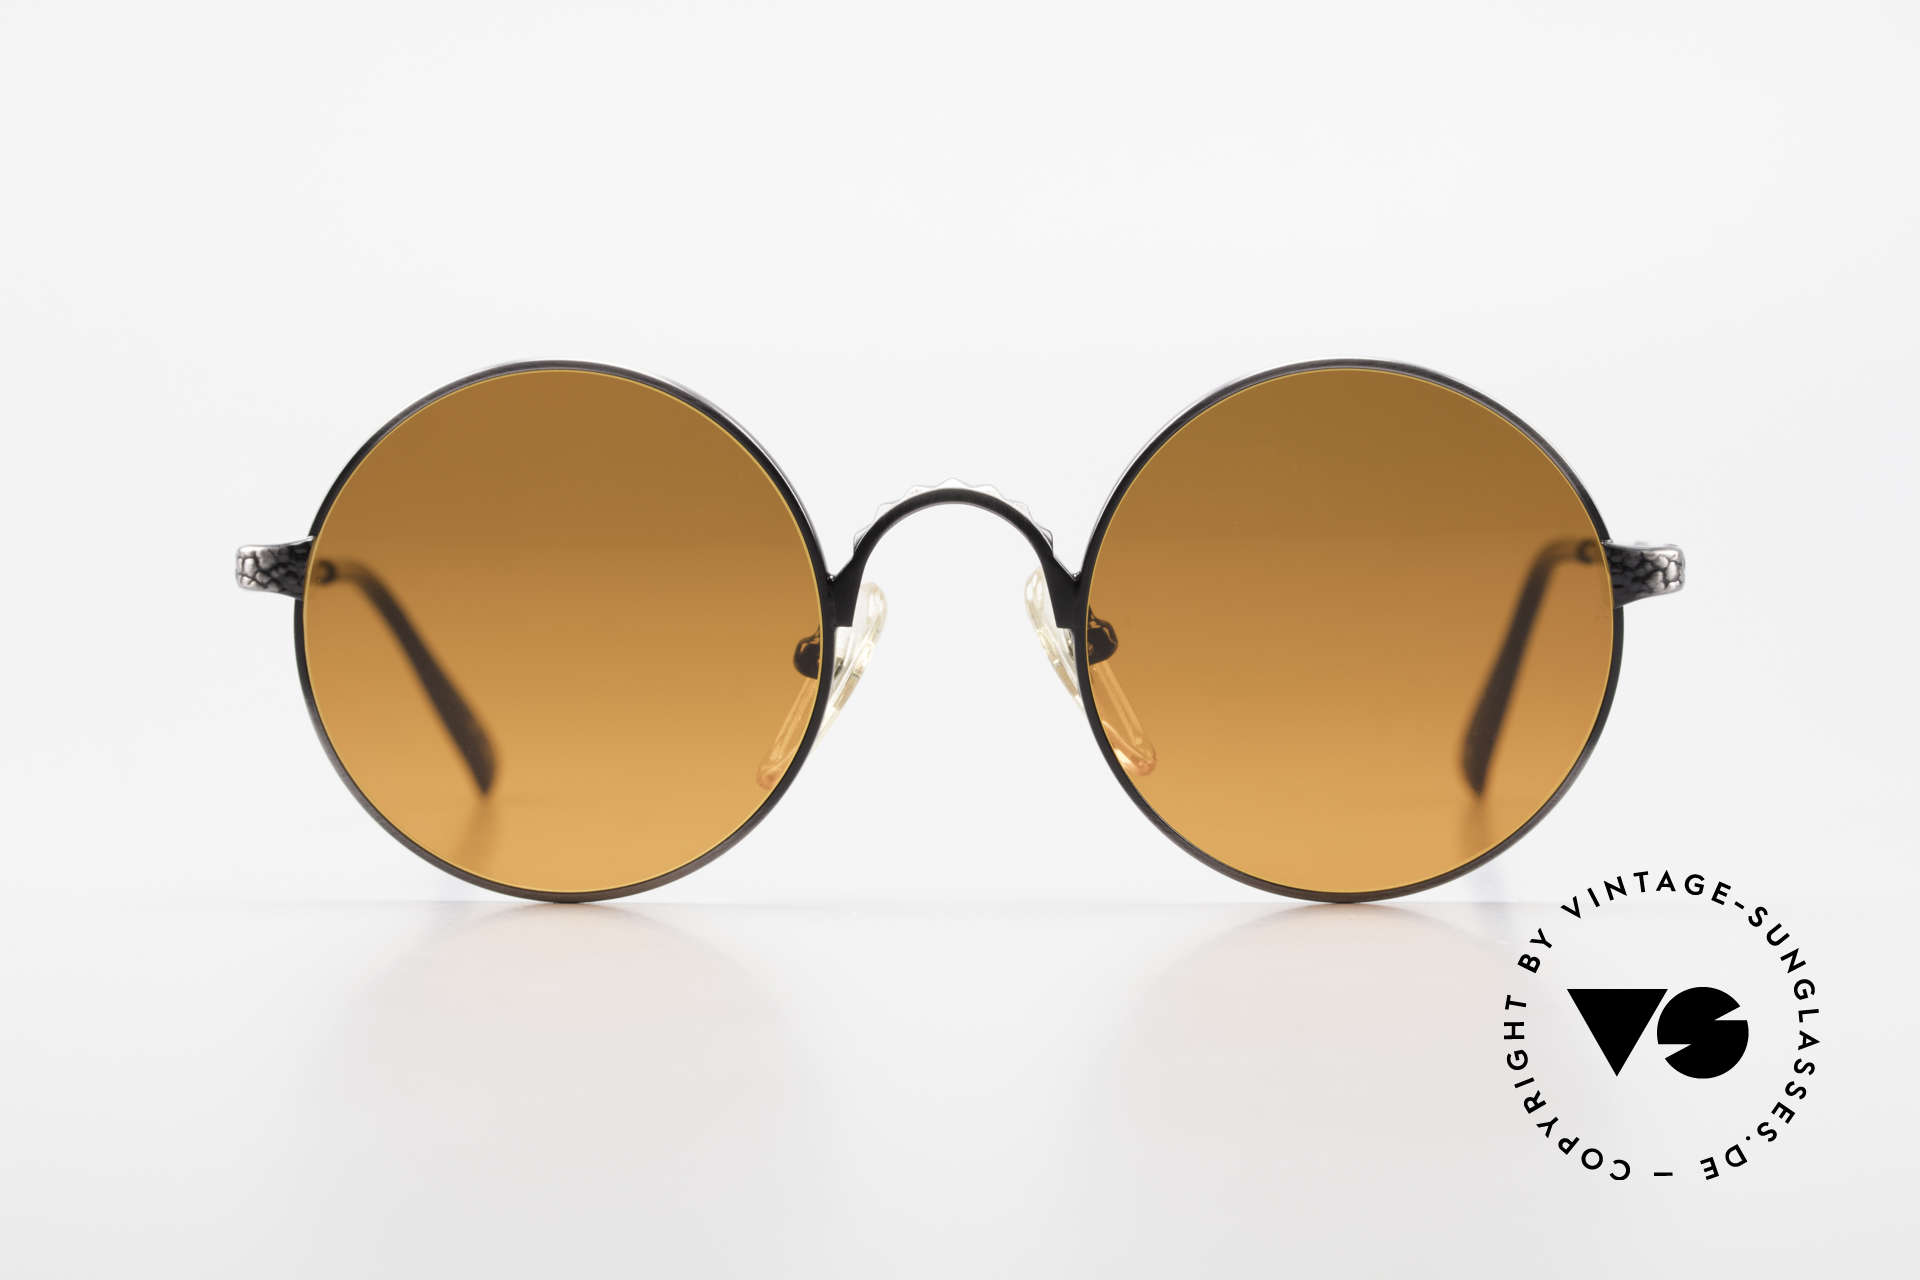 Jean Paul Gaultier 55-9671 Round 90's JPG Sunglasses, high-end metal frame with costly engravings, Made for Men and Women